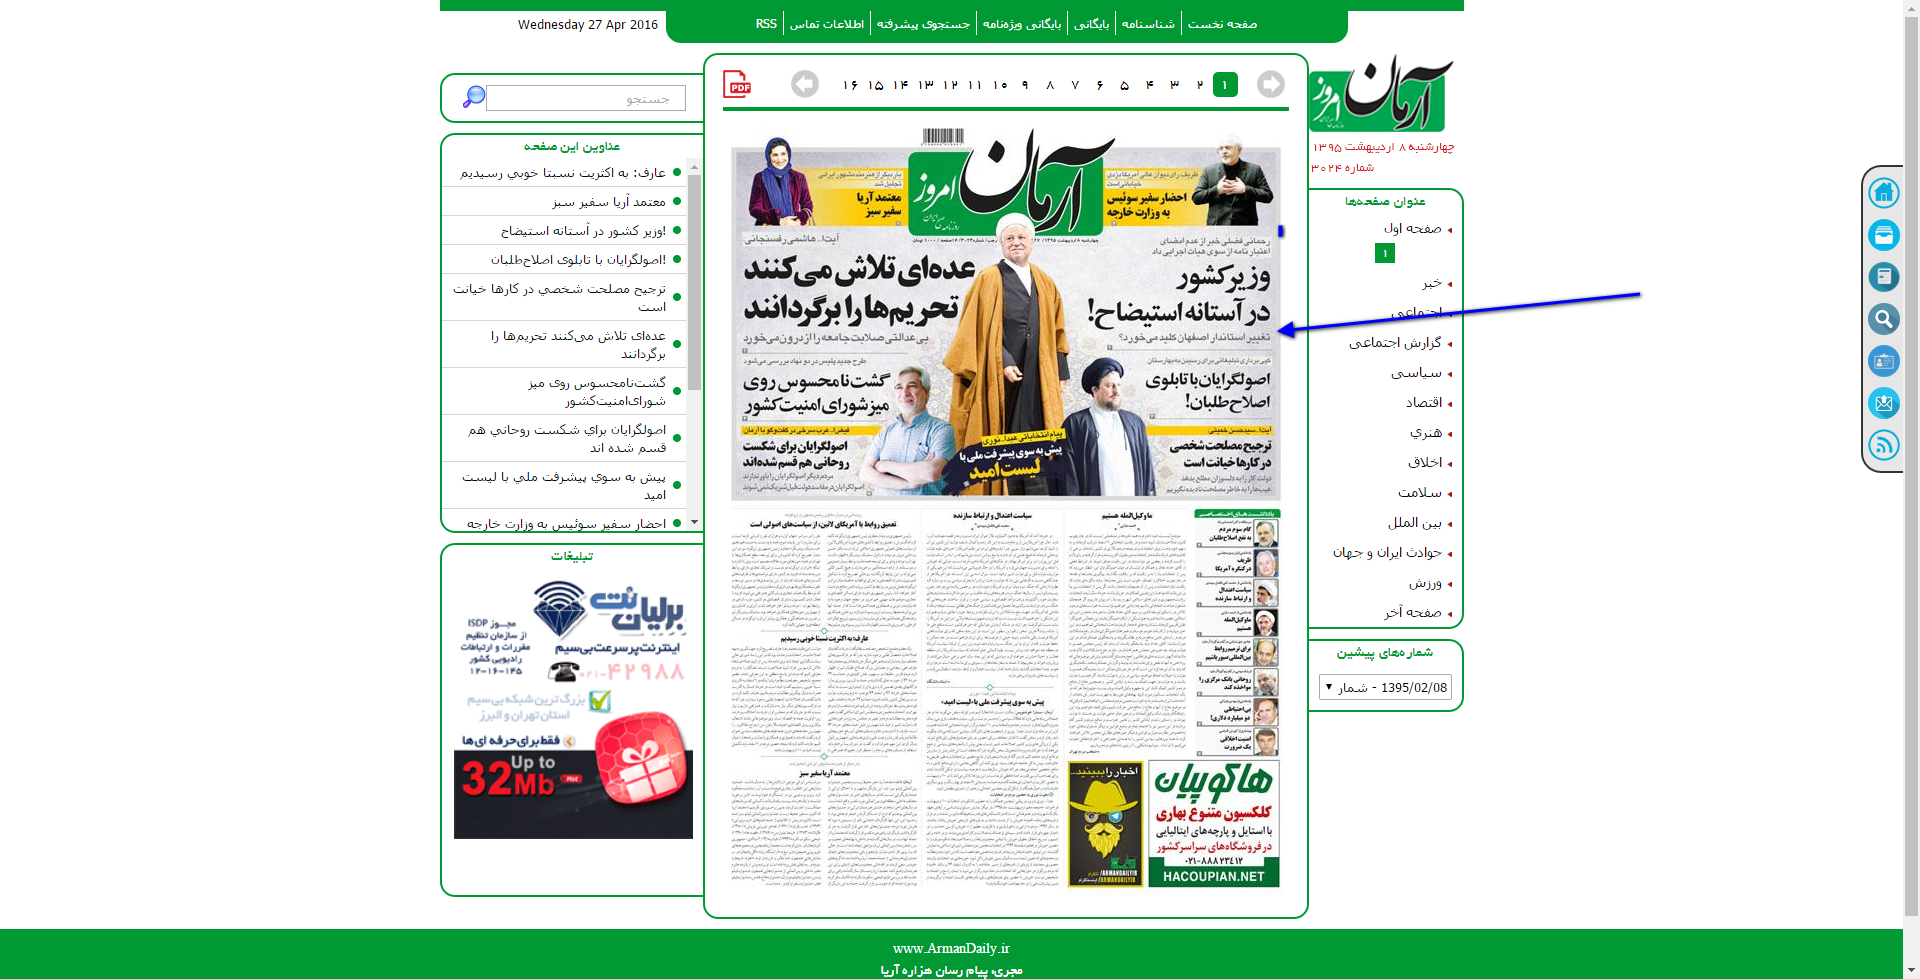 screenshot-www.armandaily.ir 2016-04-27 13-08-03